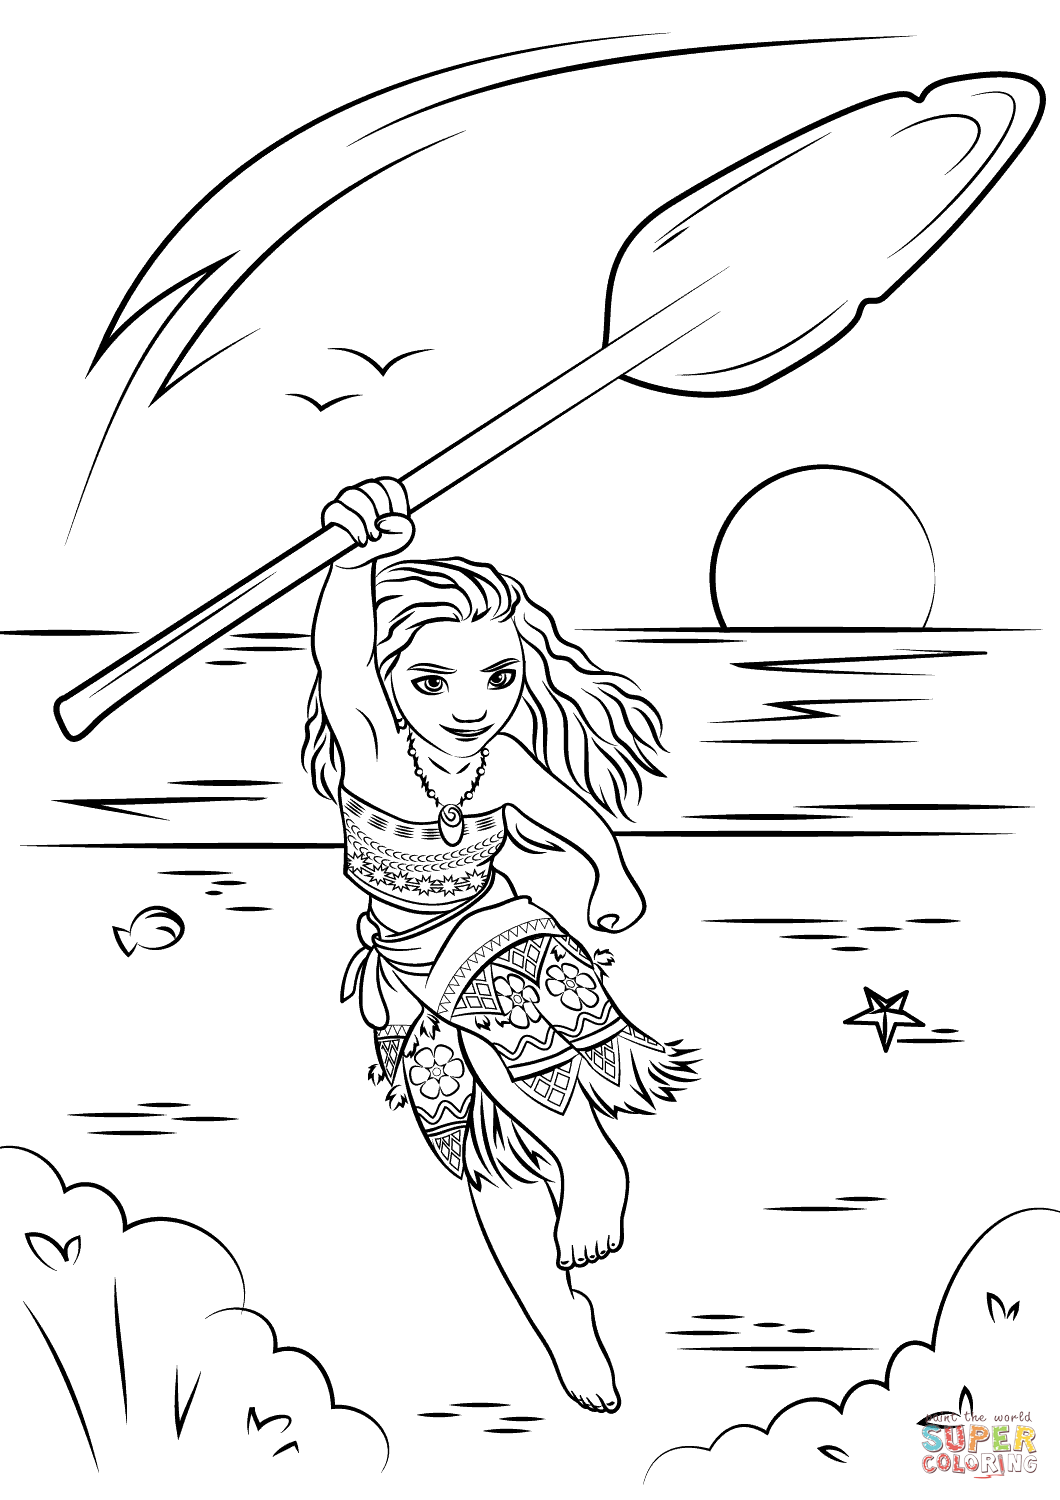 moana coloring | Coloring Pages by Cyberbargins | Pinterest ...